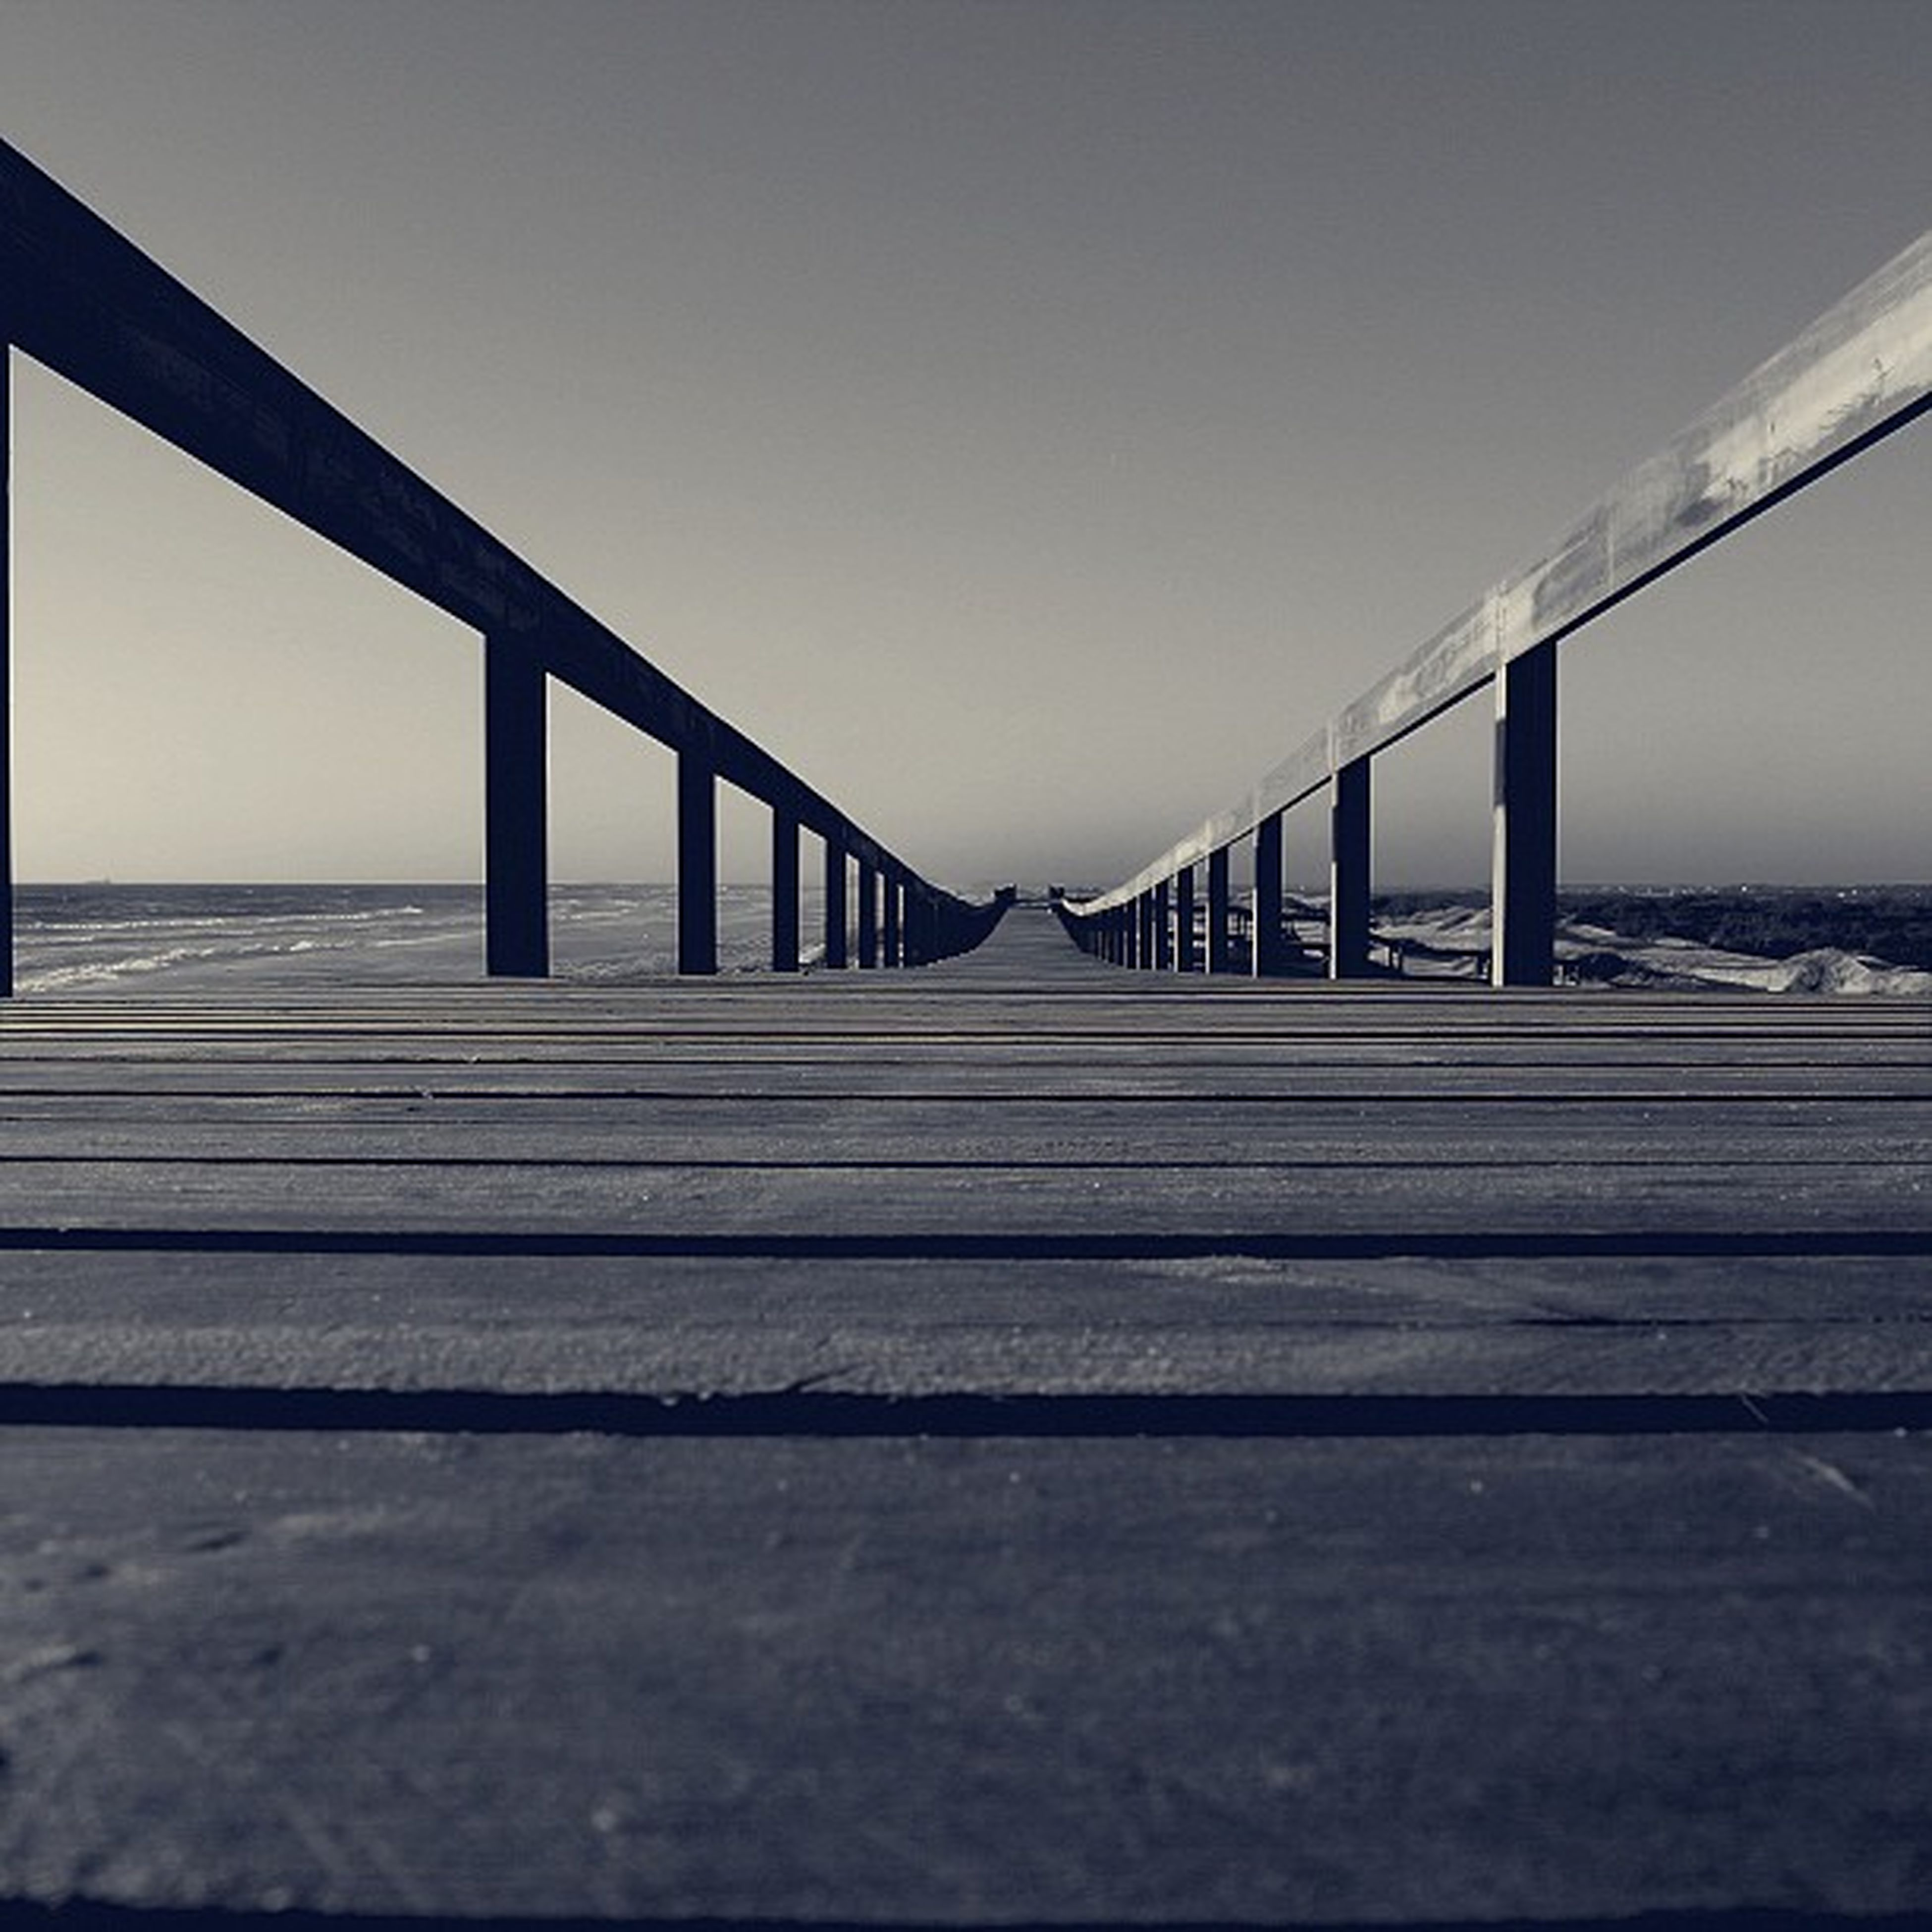 sea, clear sky, horizon over water, built structure, the way forward, railing, water, pier, sky, diminishing perspective, architecture, long, beach, connection, bridge - man made structure, bridge, surface level, tranquility, tranquil scene, copy space